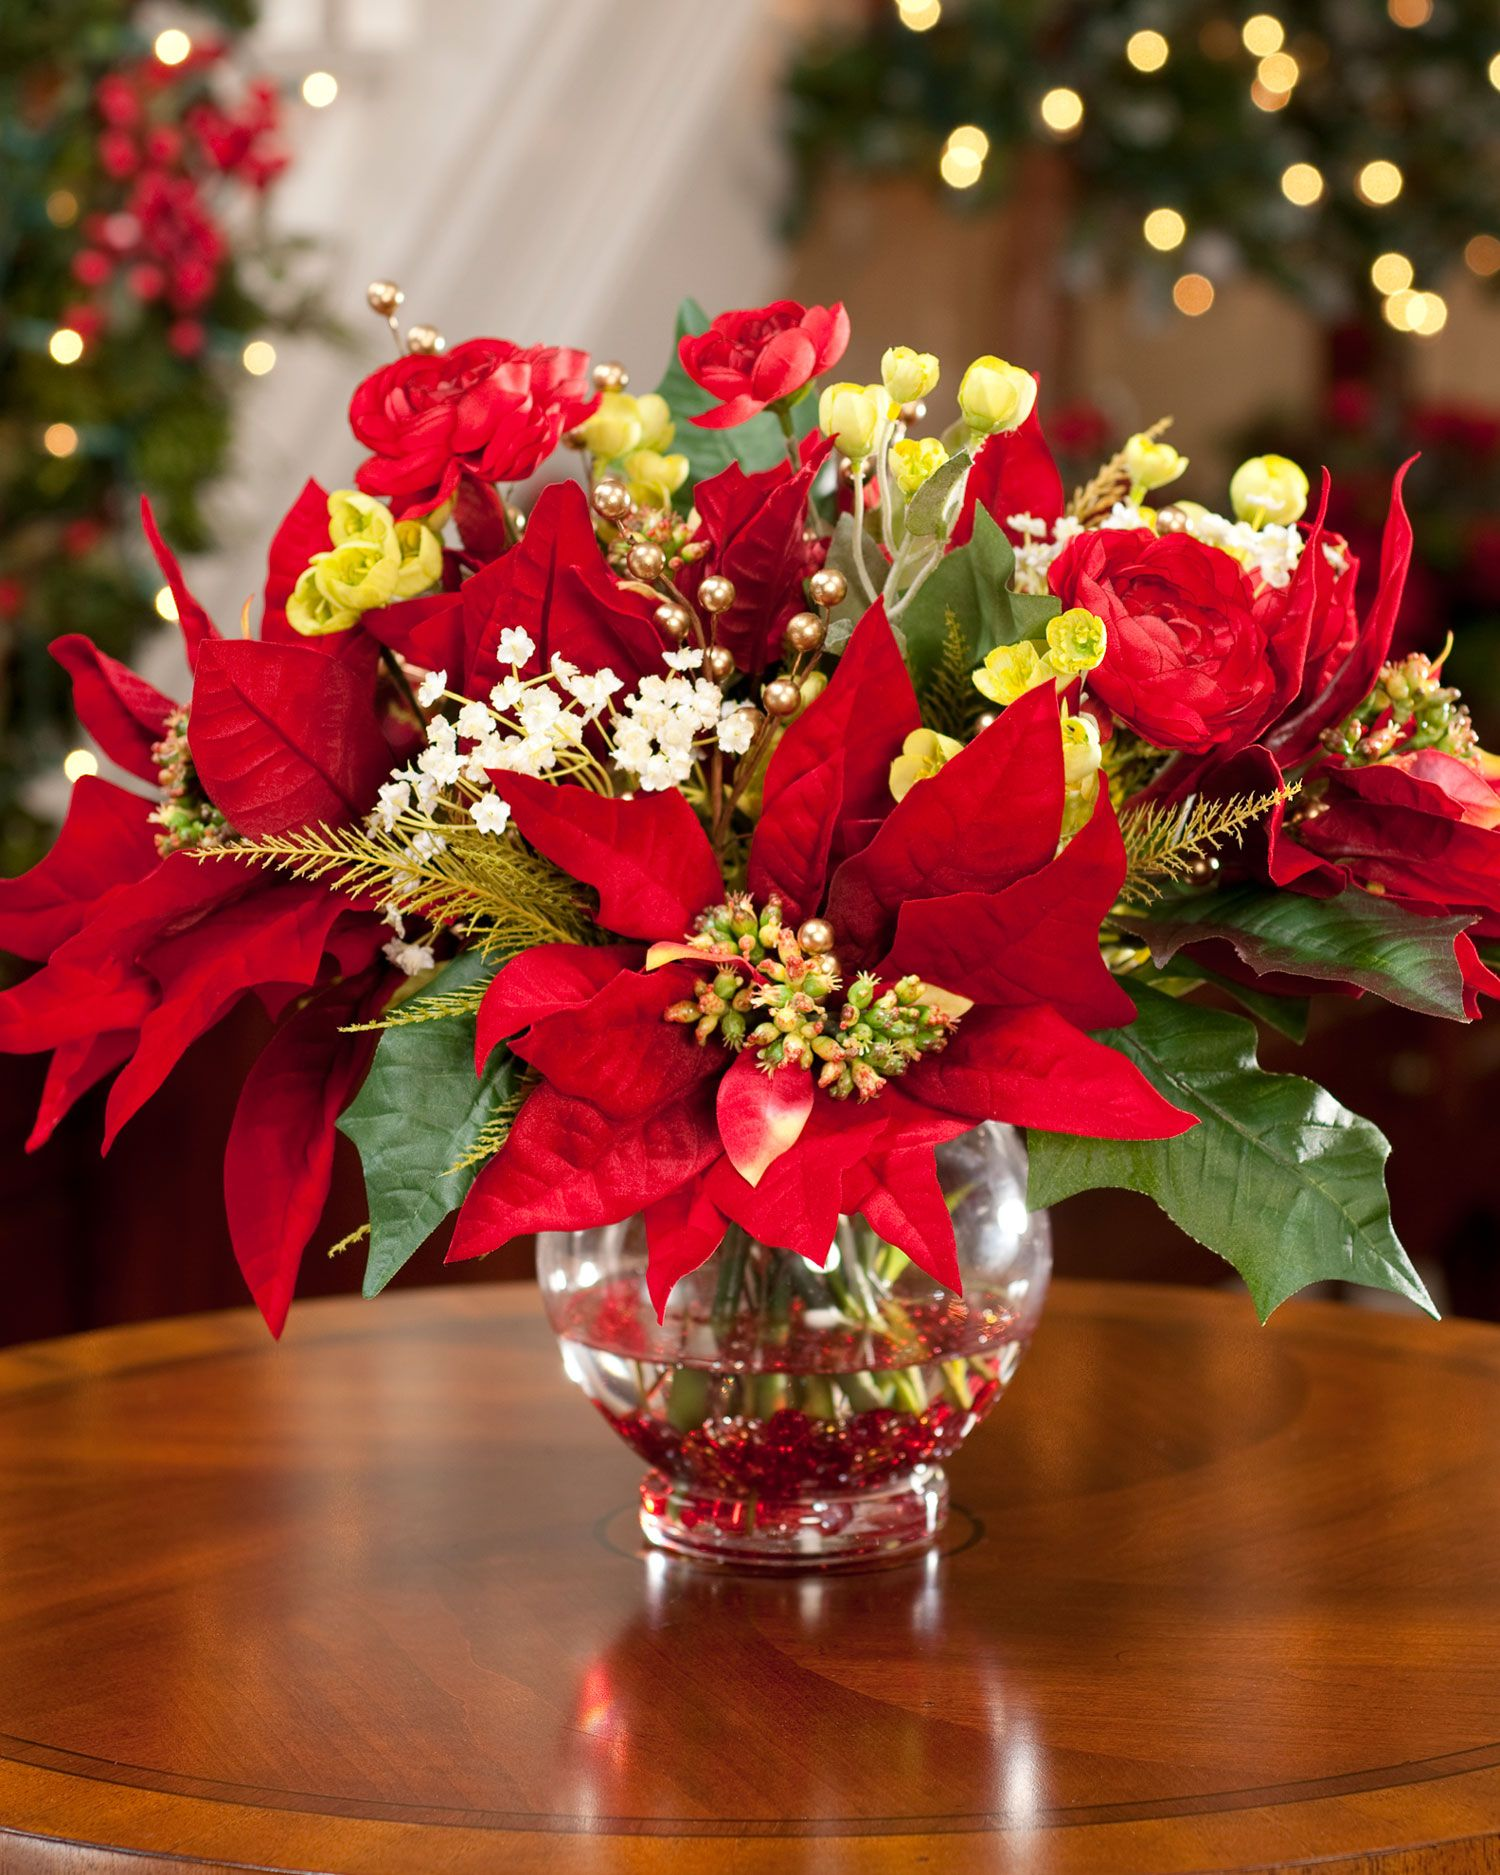 Poinsettia Ranunculus Silk Holiday Arrangement Holiday Floral Arrangements Christmas Floral Arrangements Christmas Floral